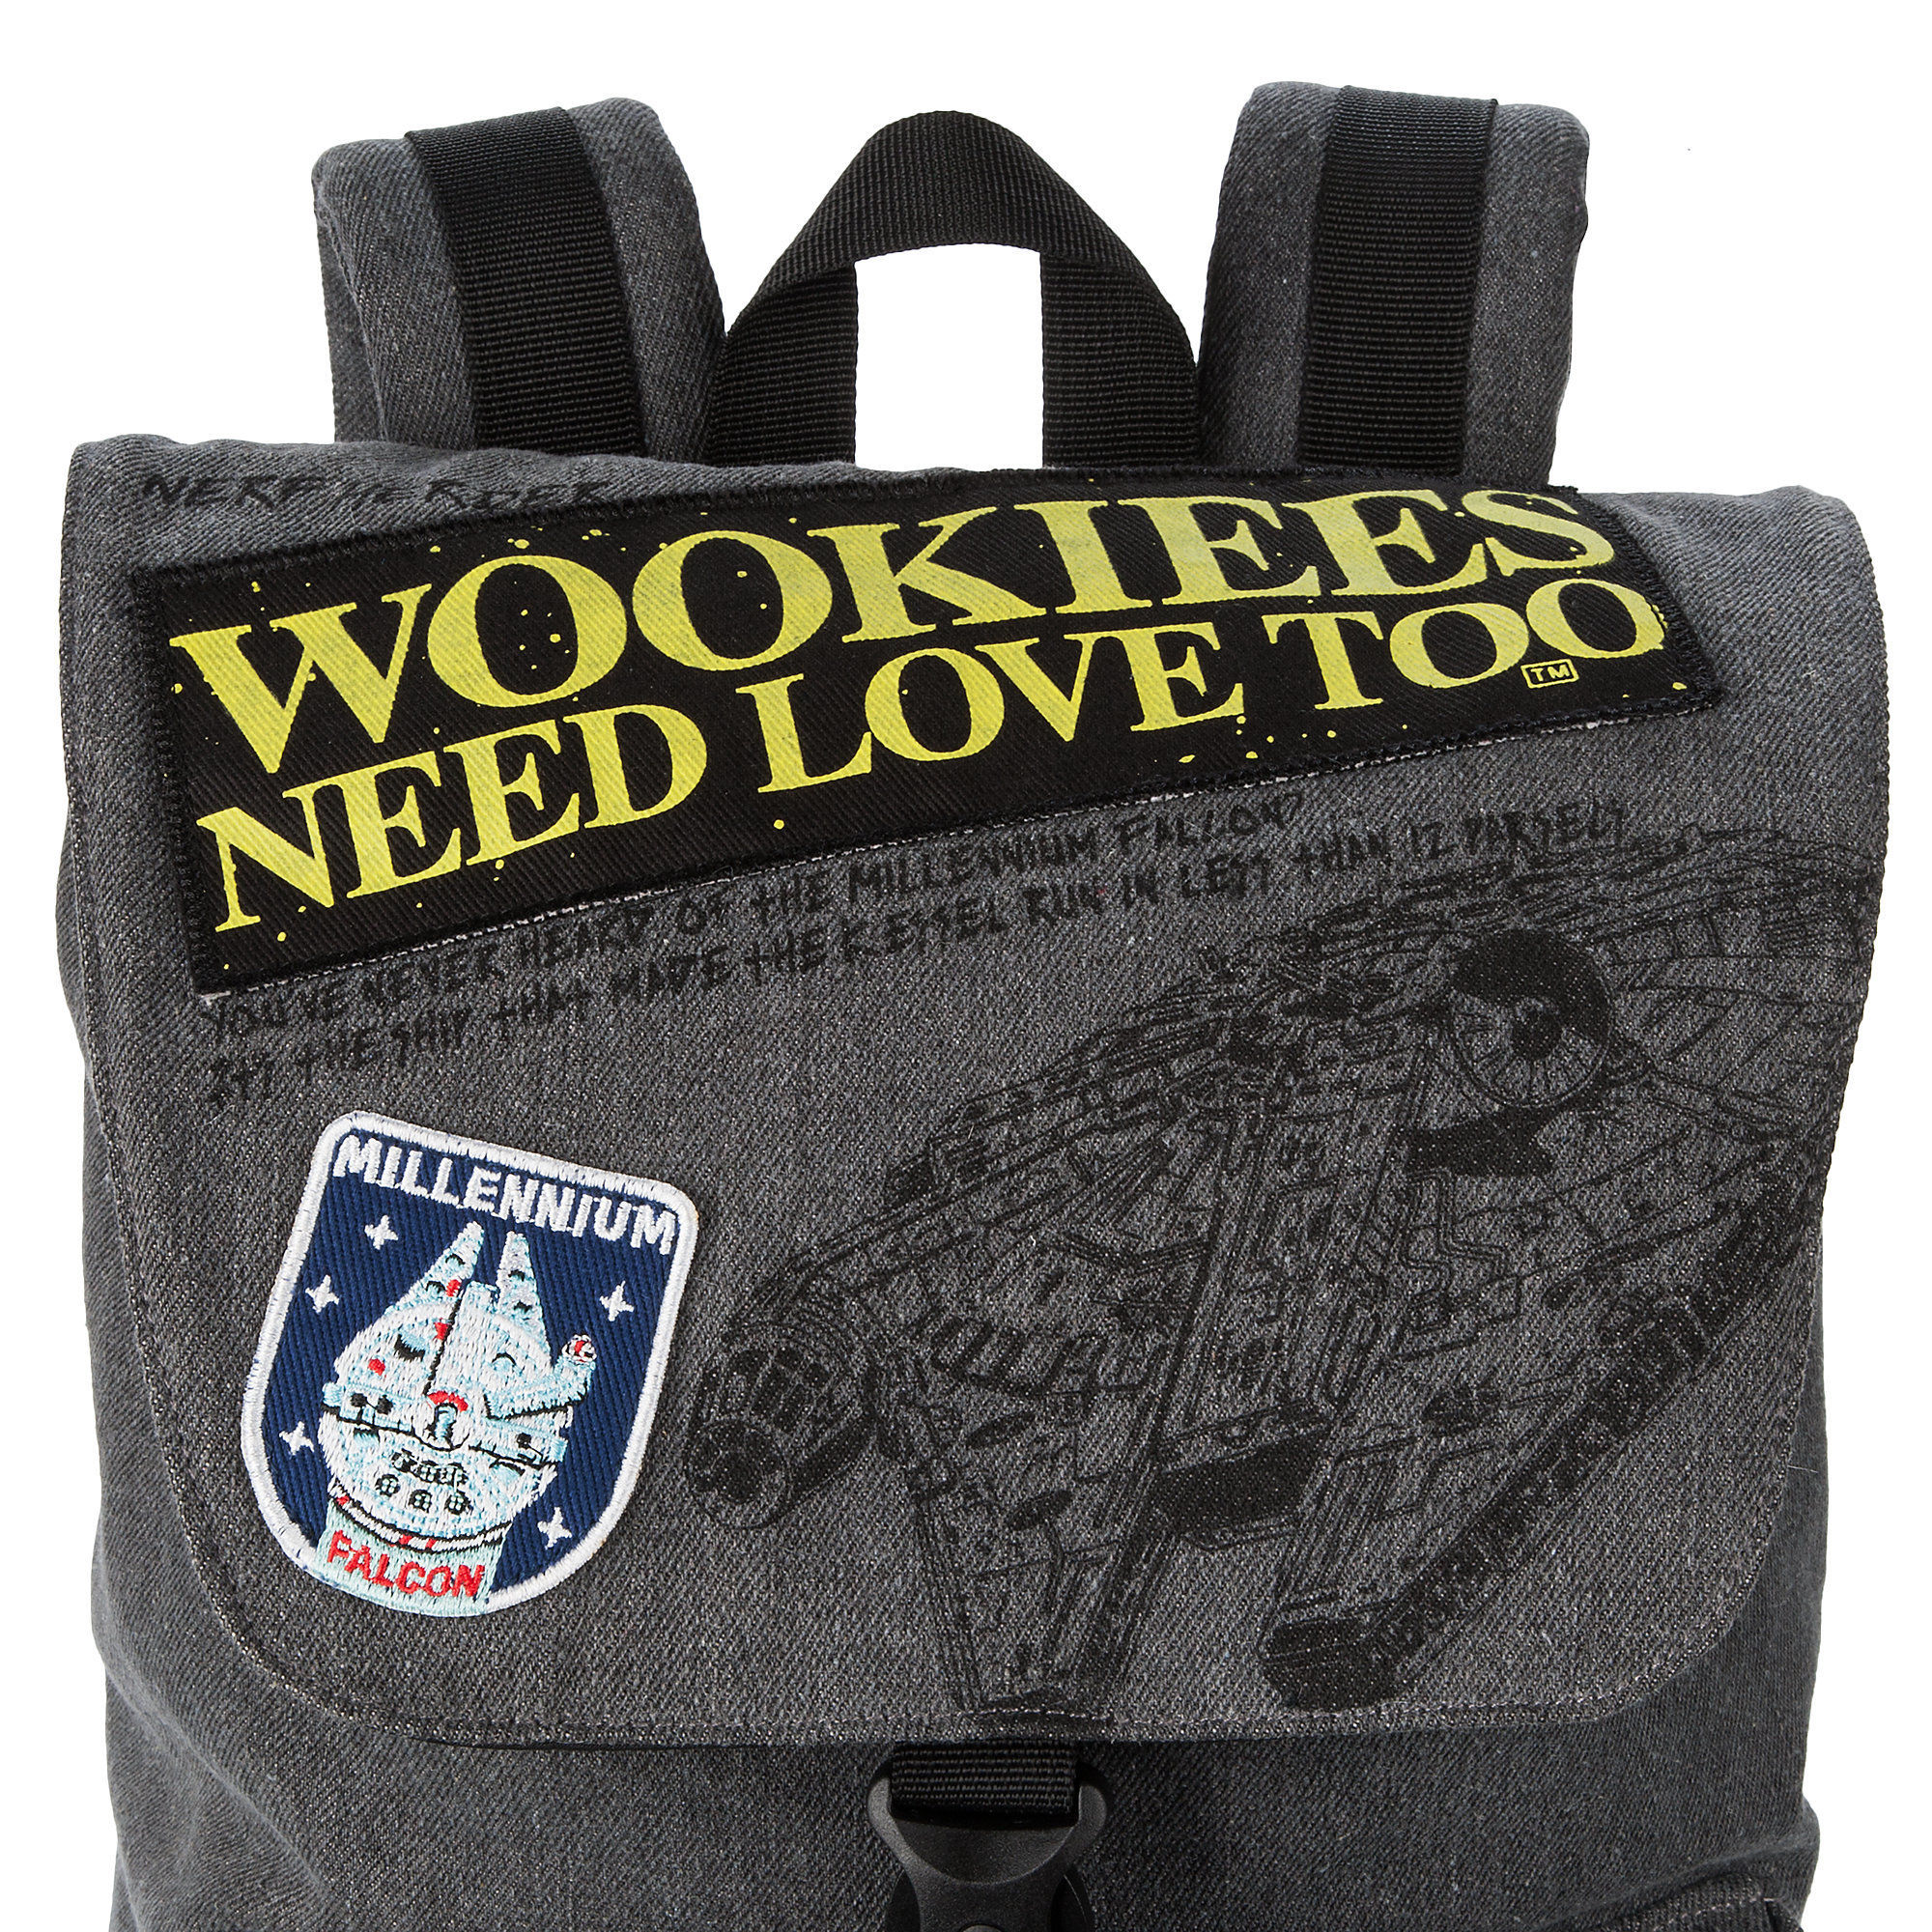 Loungefly x Star Wars Wookiee Backpack at Shop Disney